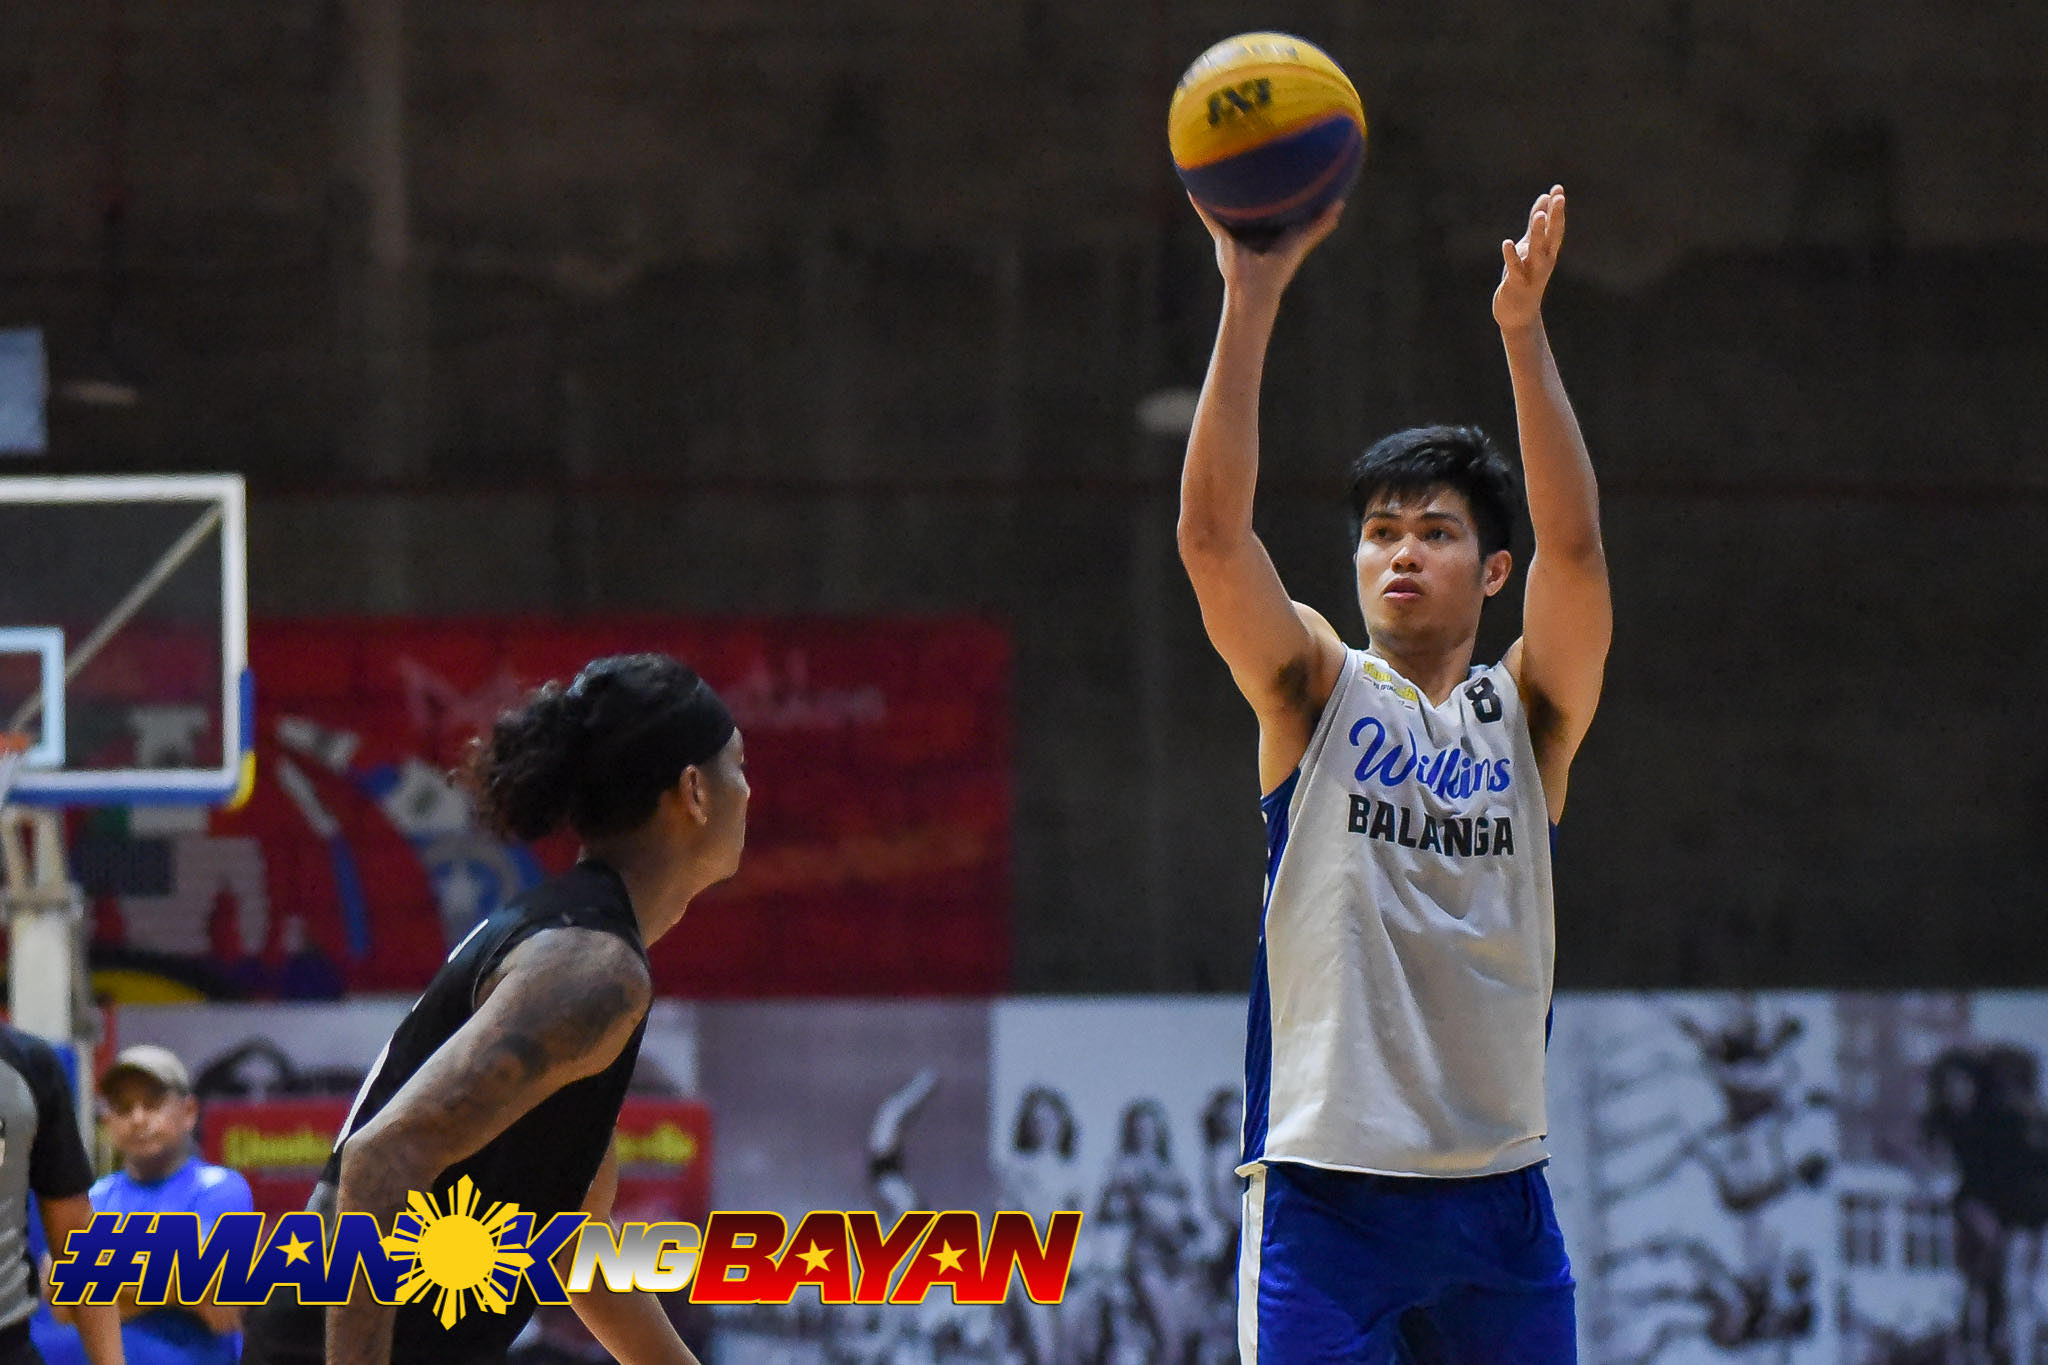 Tiebreaker Times Santillan dominates as Balanga takes down Pasig anew in MelMac Cup 3x3 Basketball Chooks-to-Go Pilipinas 3x3 News  Troy Rike Santi Santillan Pasig Chooks Karl Dehesa Joshua Munzon Franky Johnson Dylan Ababou Chris De Chavez Basilan Steel Balanga Chooks Alvin Pasaol 2019 Chooks-to-Go Pilipinas 3x3 Season 2019 Chooks-to-Go Pilipinas 3x3 MelMac Cup